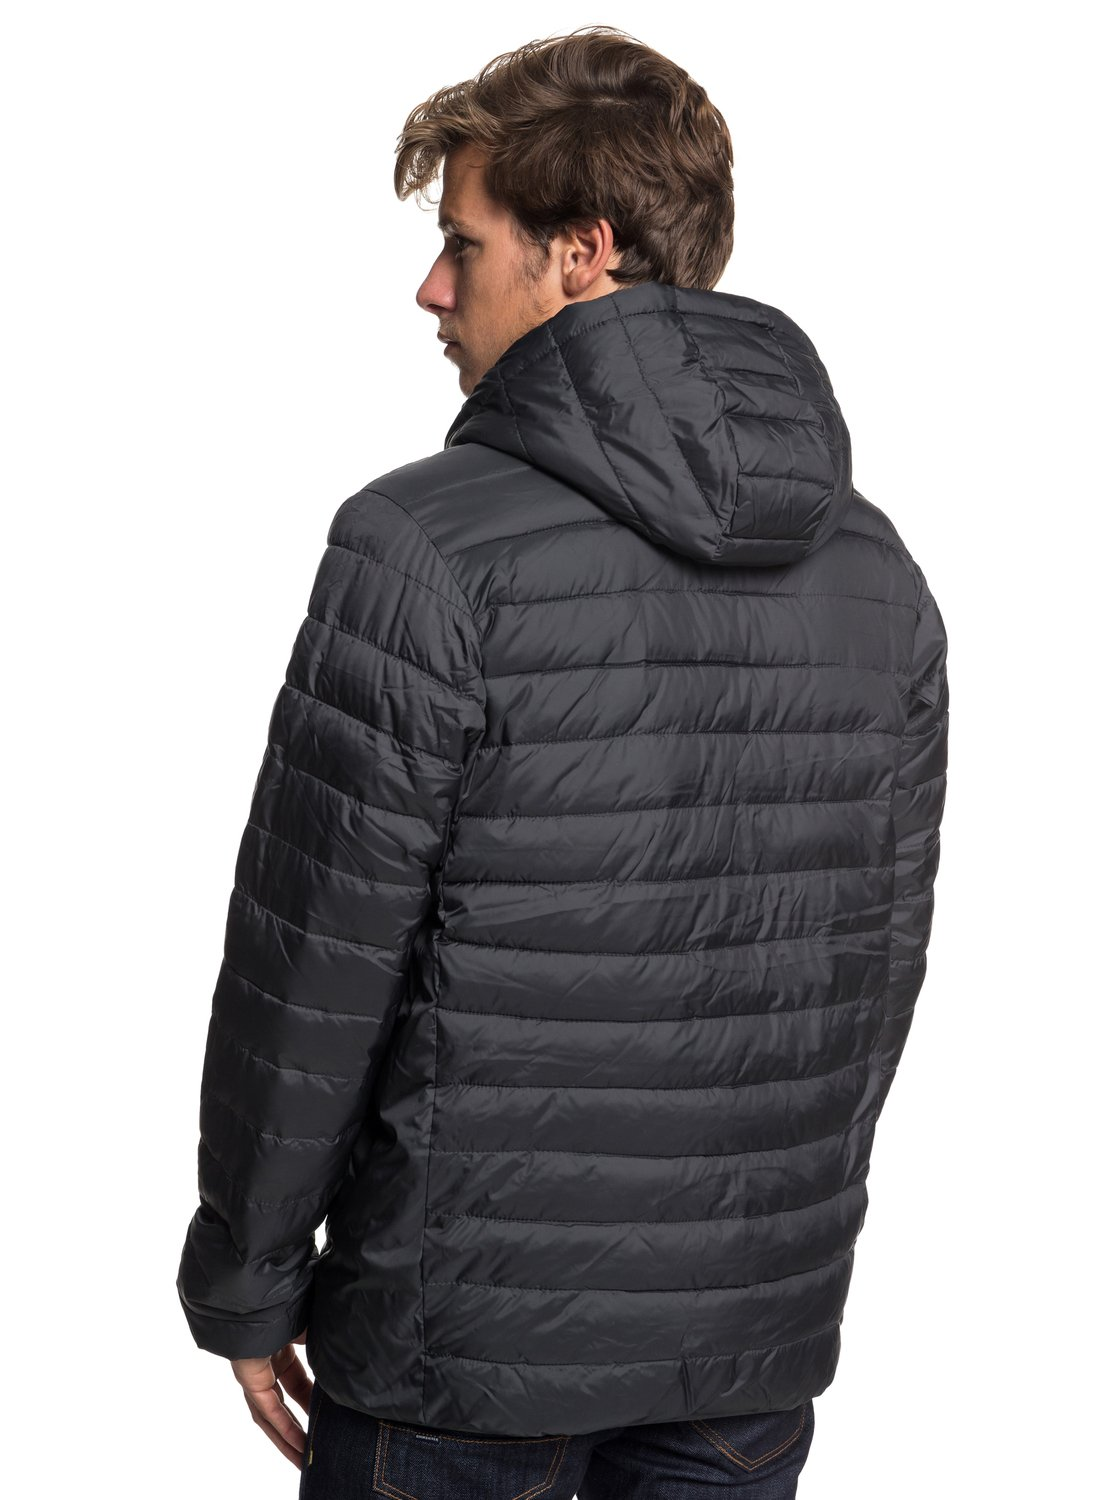 Sacs Quiksilver Everyday noirs